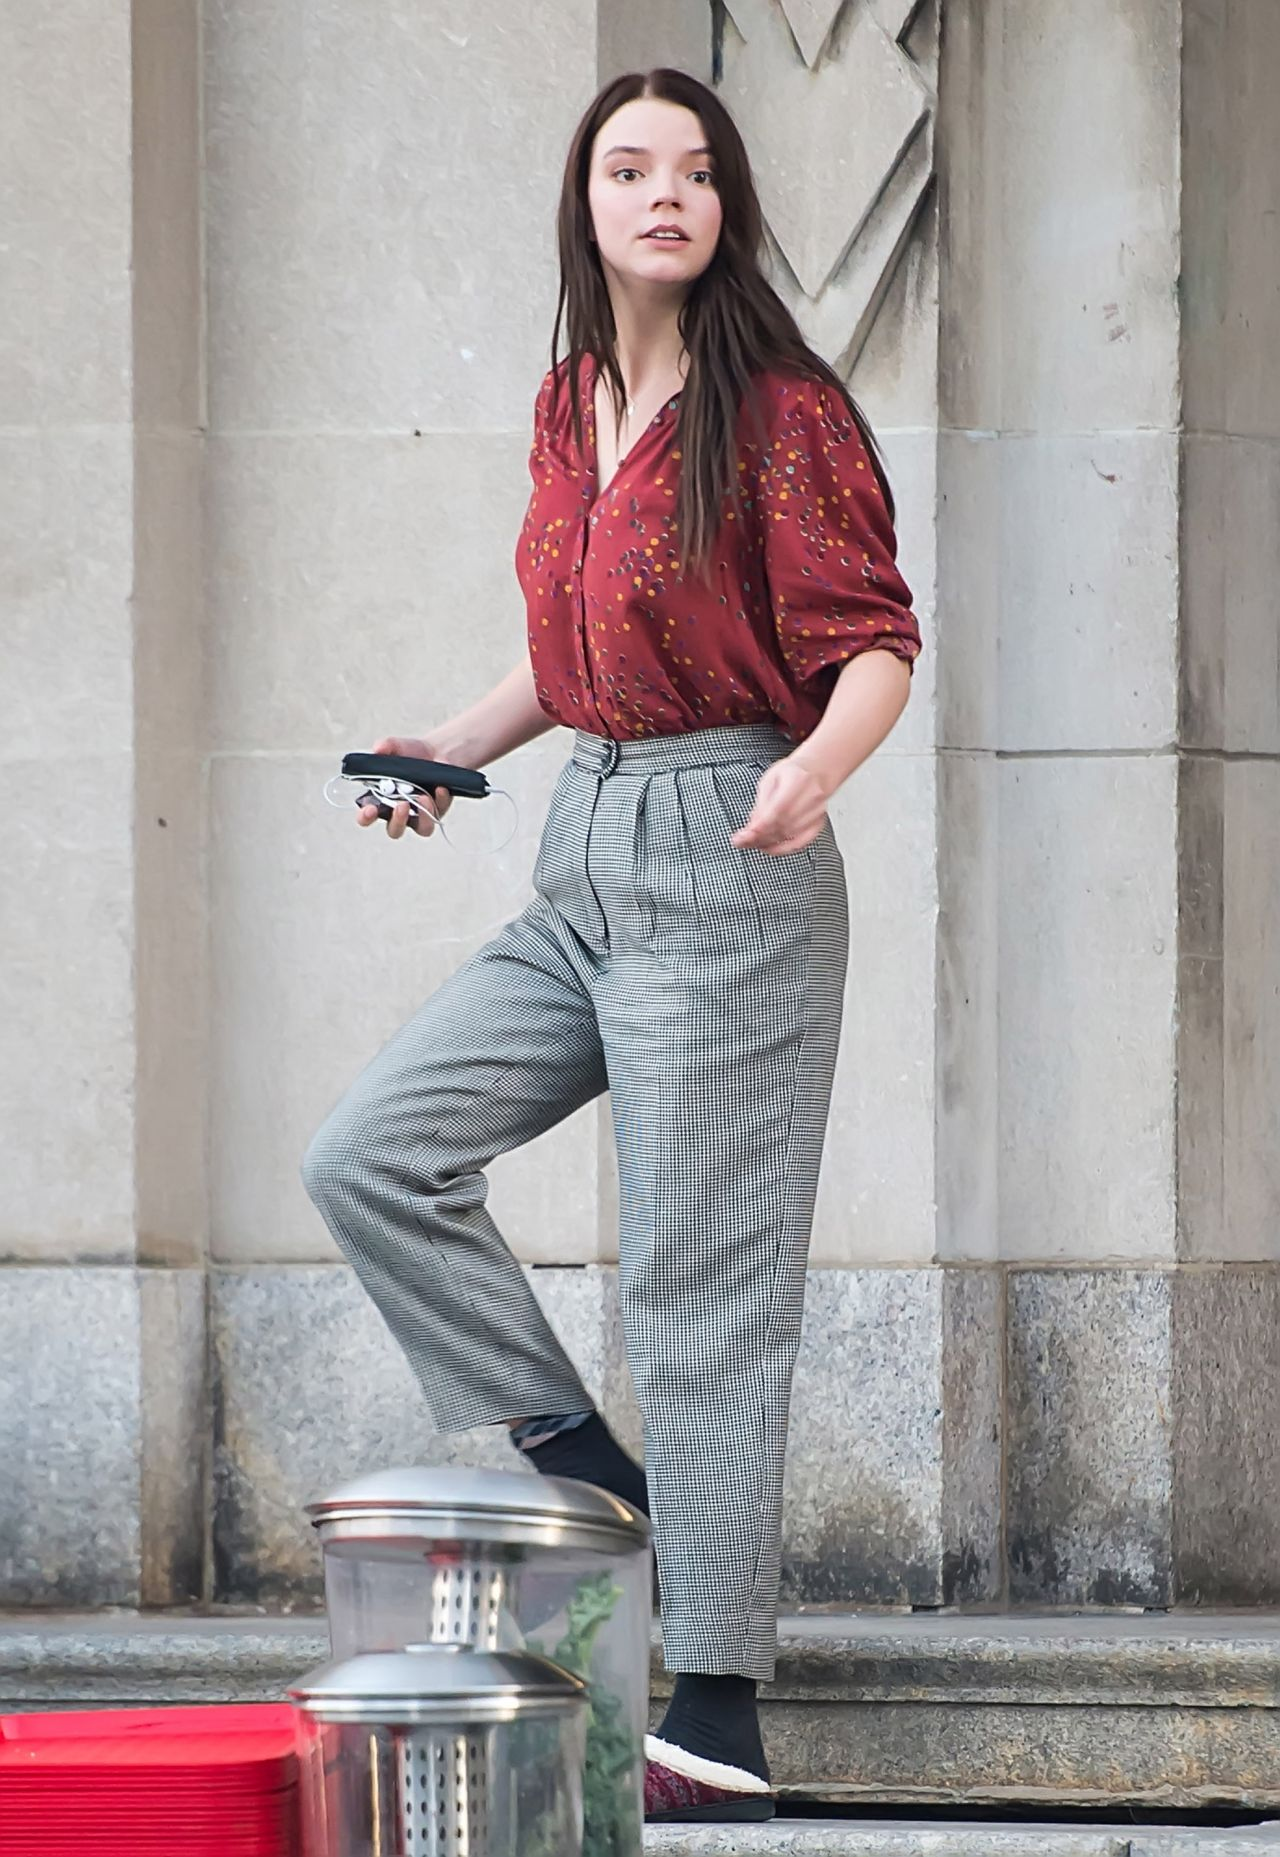 On To College Show 10 02 2017 >> Anya Taylor-Joy - Leaving a School Building in Philadelphia 10/02/2017